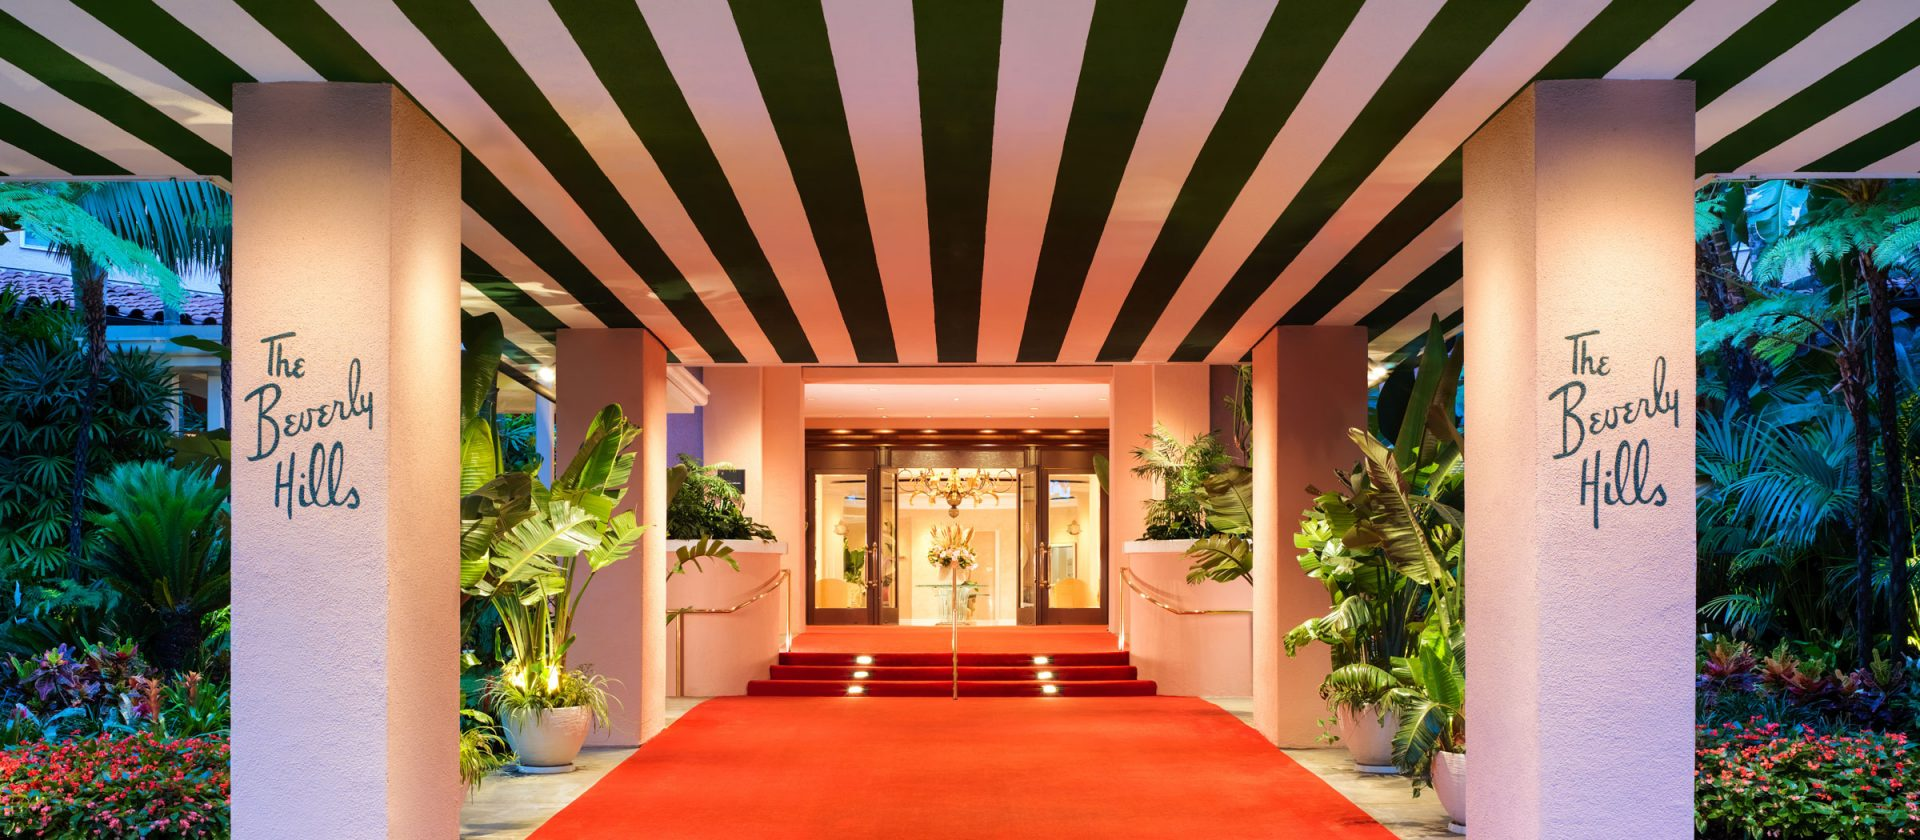 The entrance to the Beverly Hills Hotel